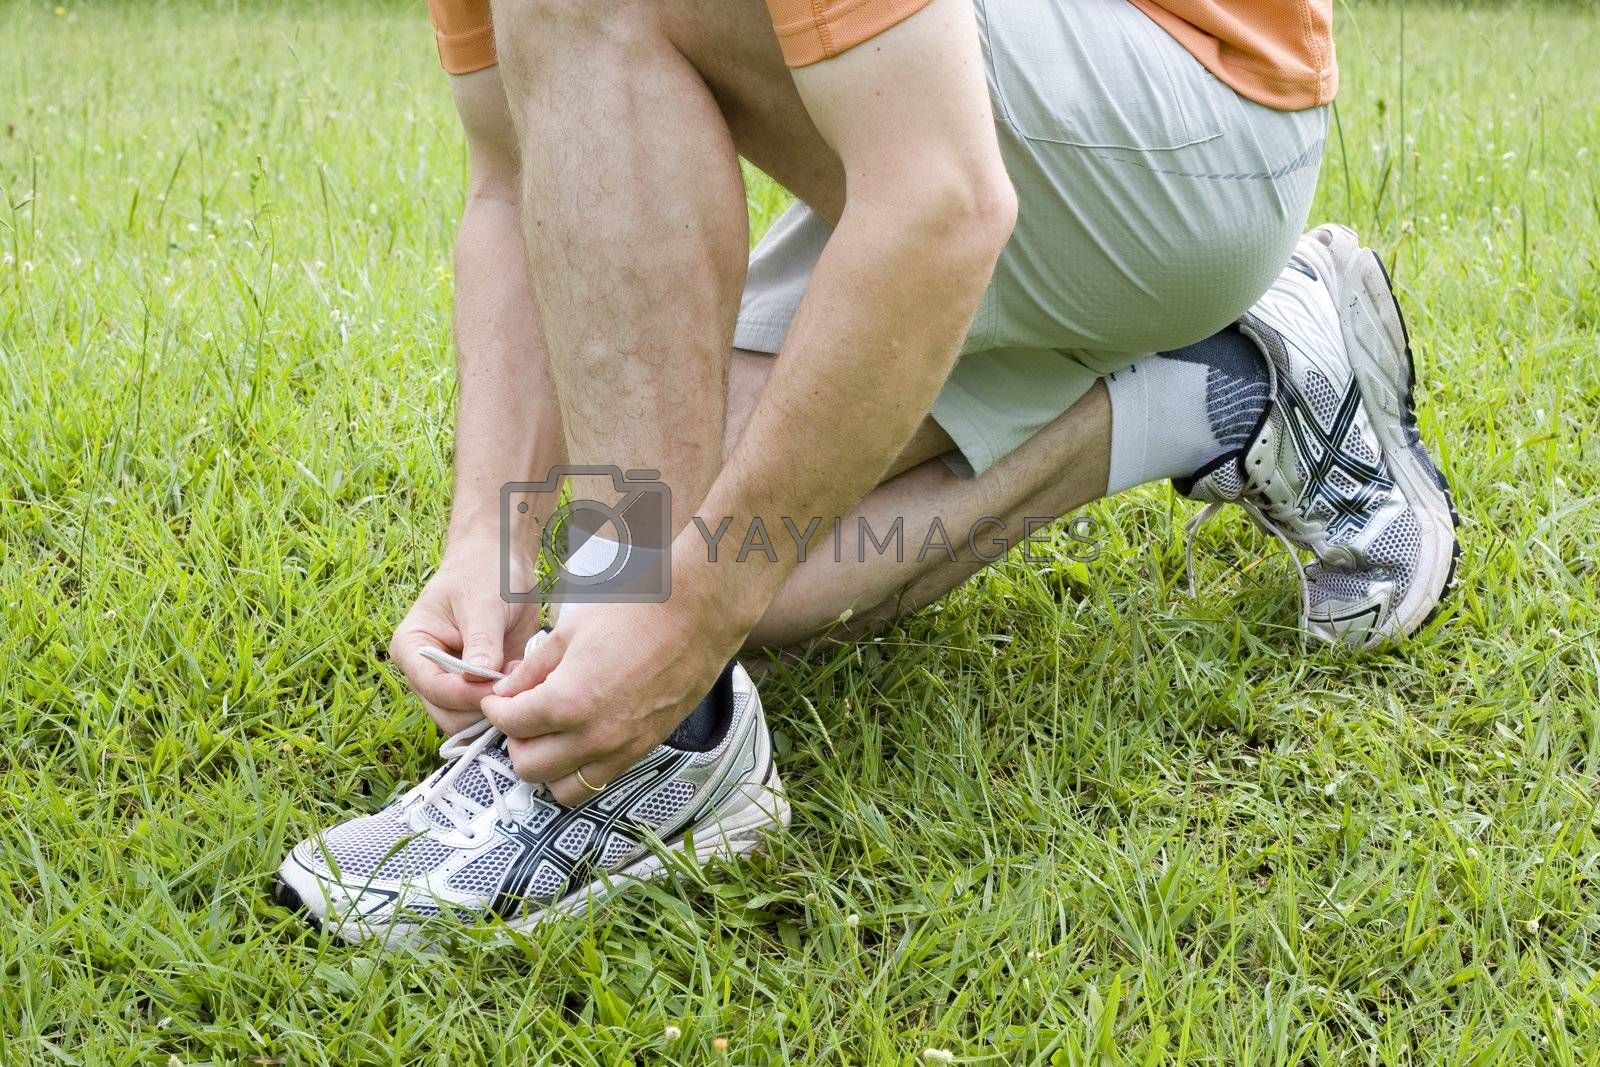 Jogger or runner tying his shoes in green grass